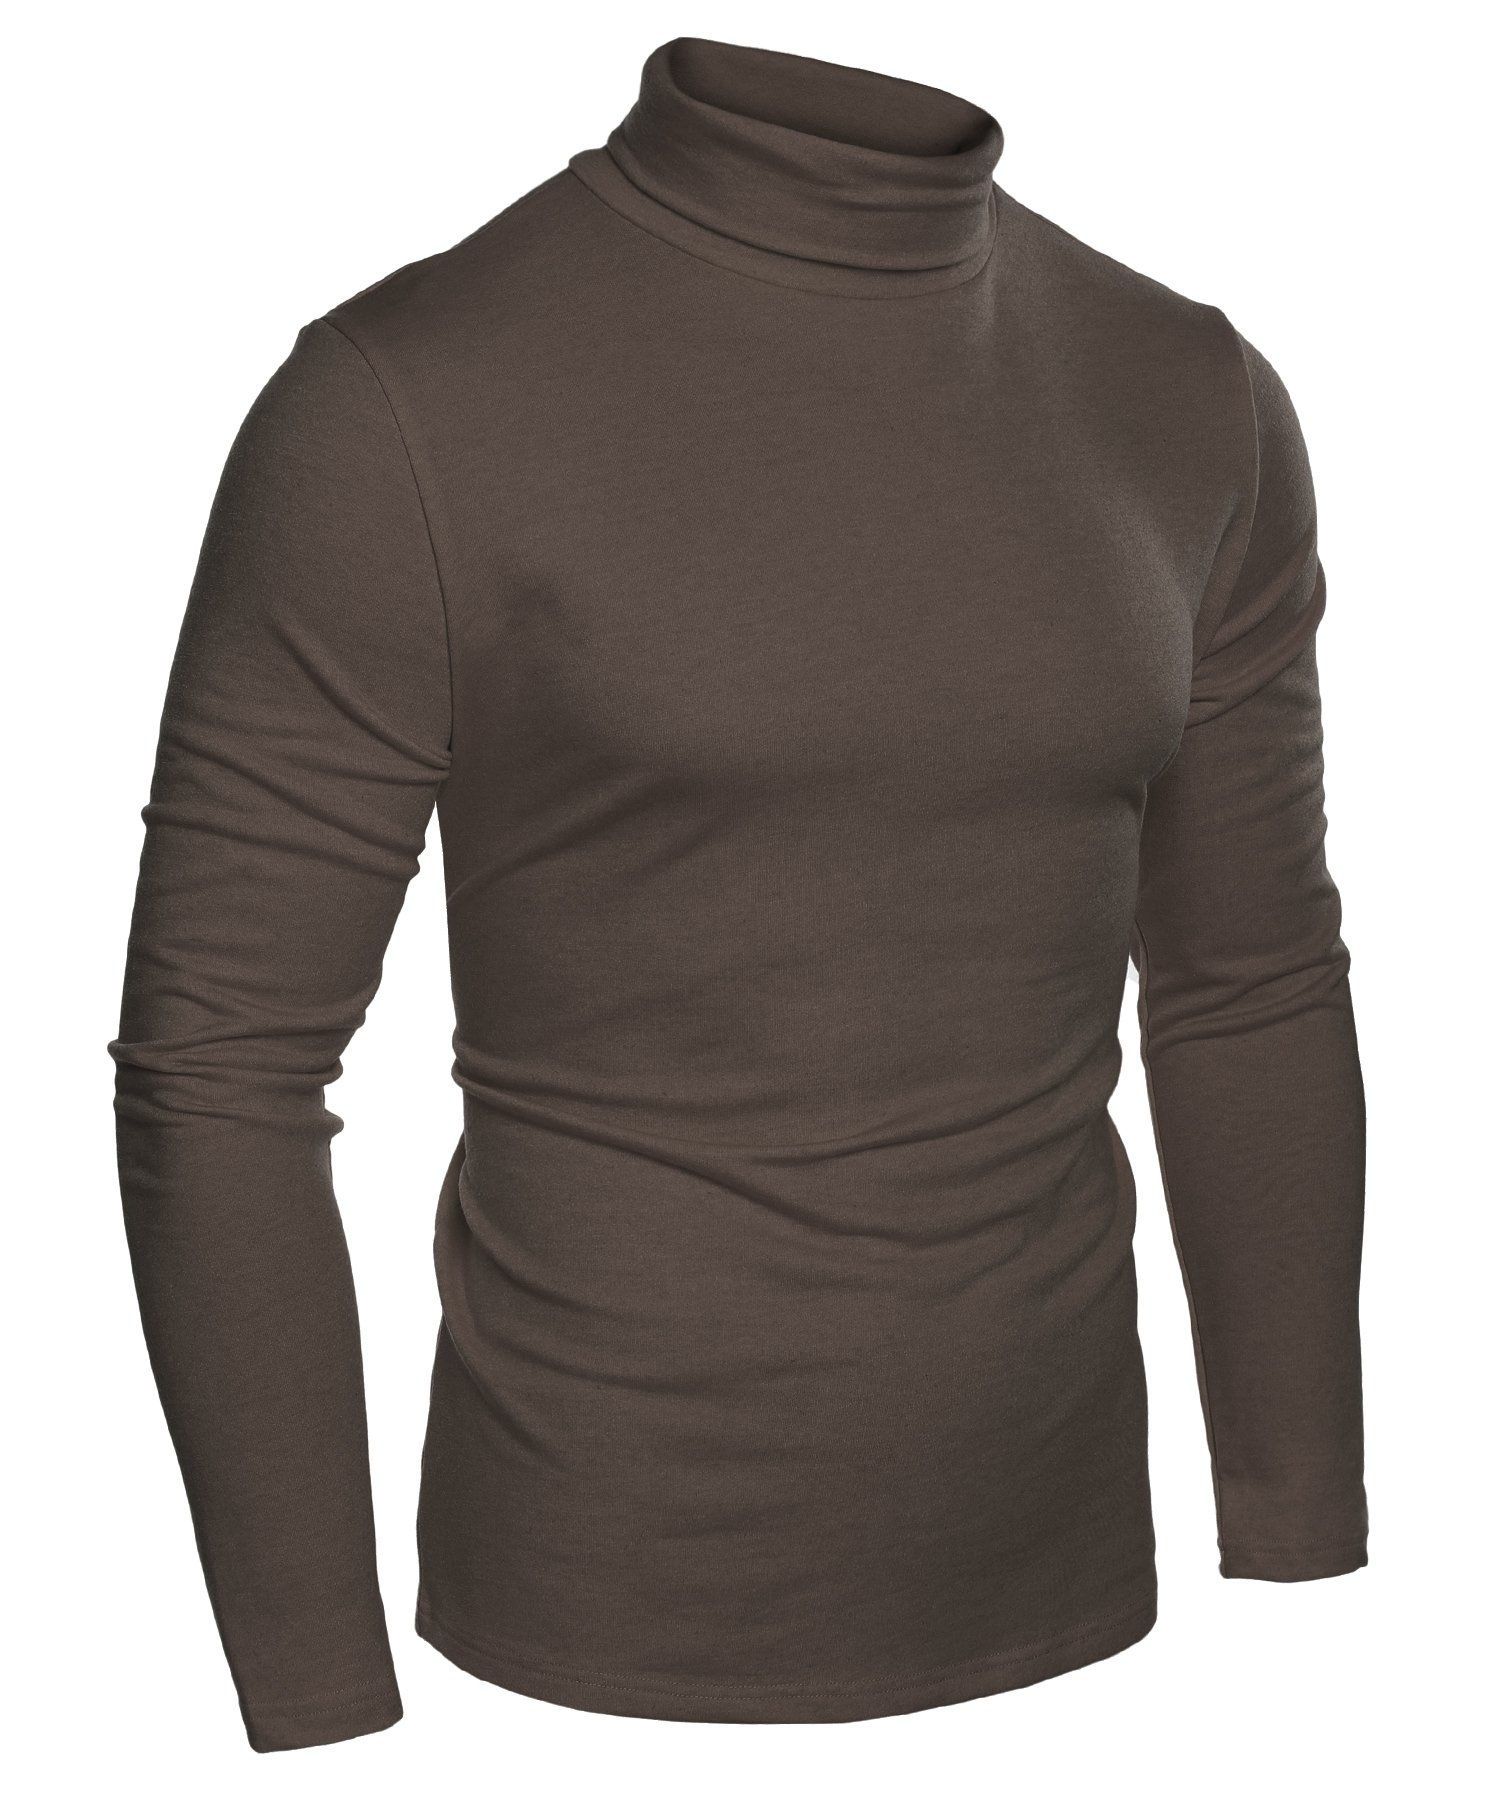 Coofandy Mens Casual Basic Thermal Turtleneck Slim Fit Pullover Thermal Sweaters, Brown, X-Large